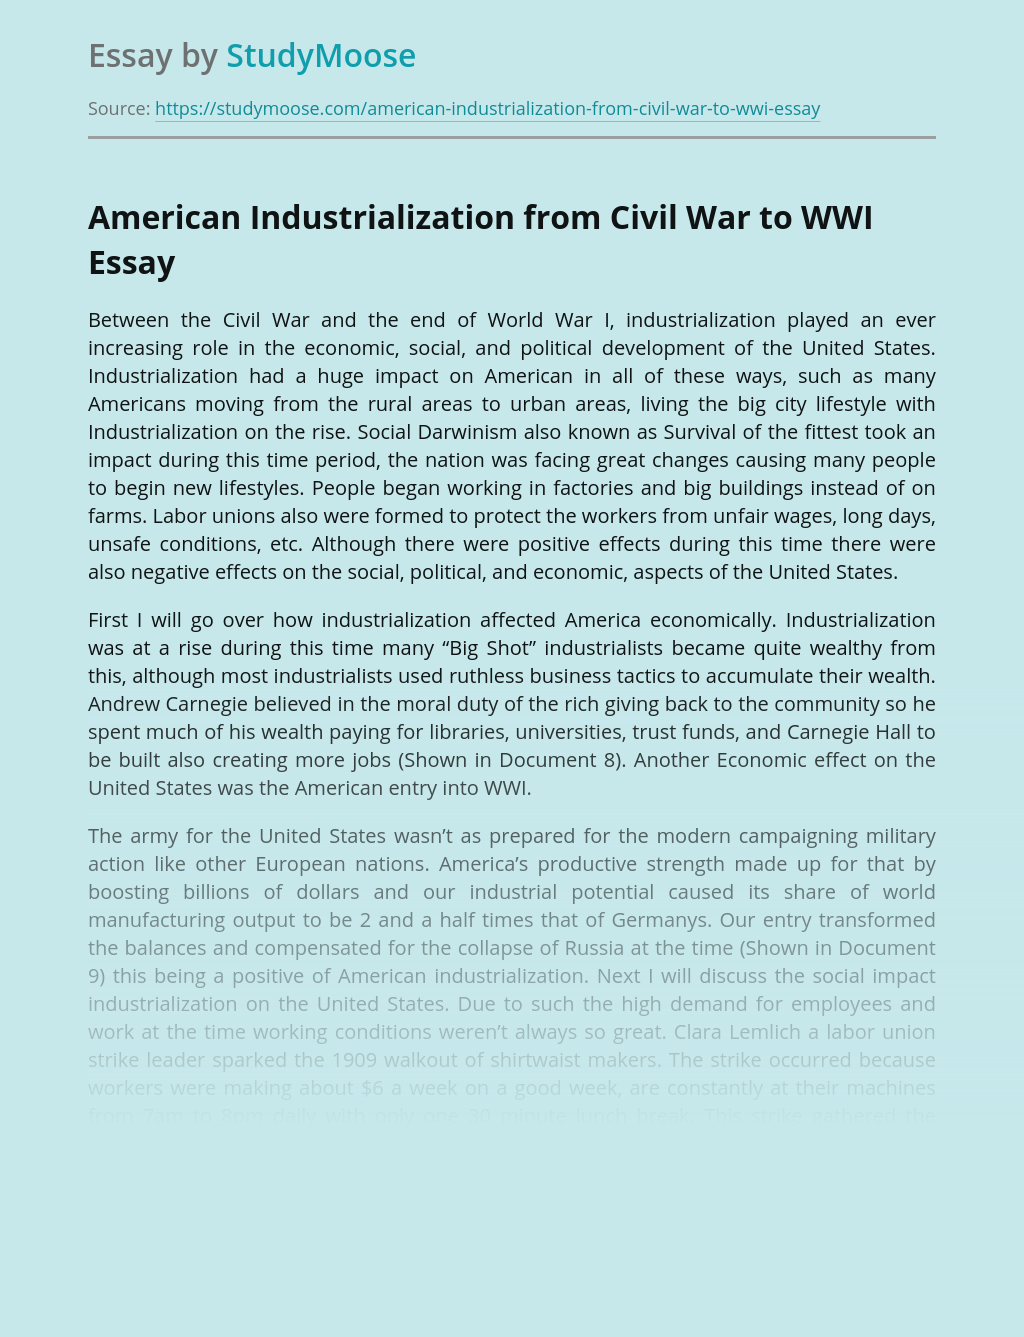 American Industrialization from Civil War to WWI